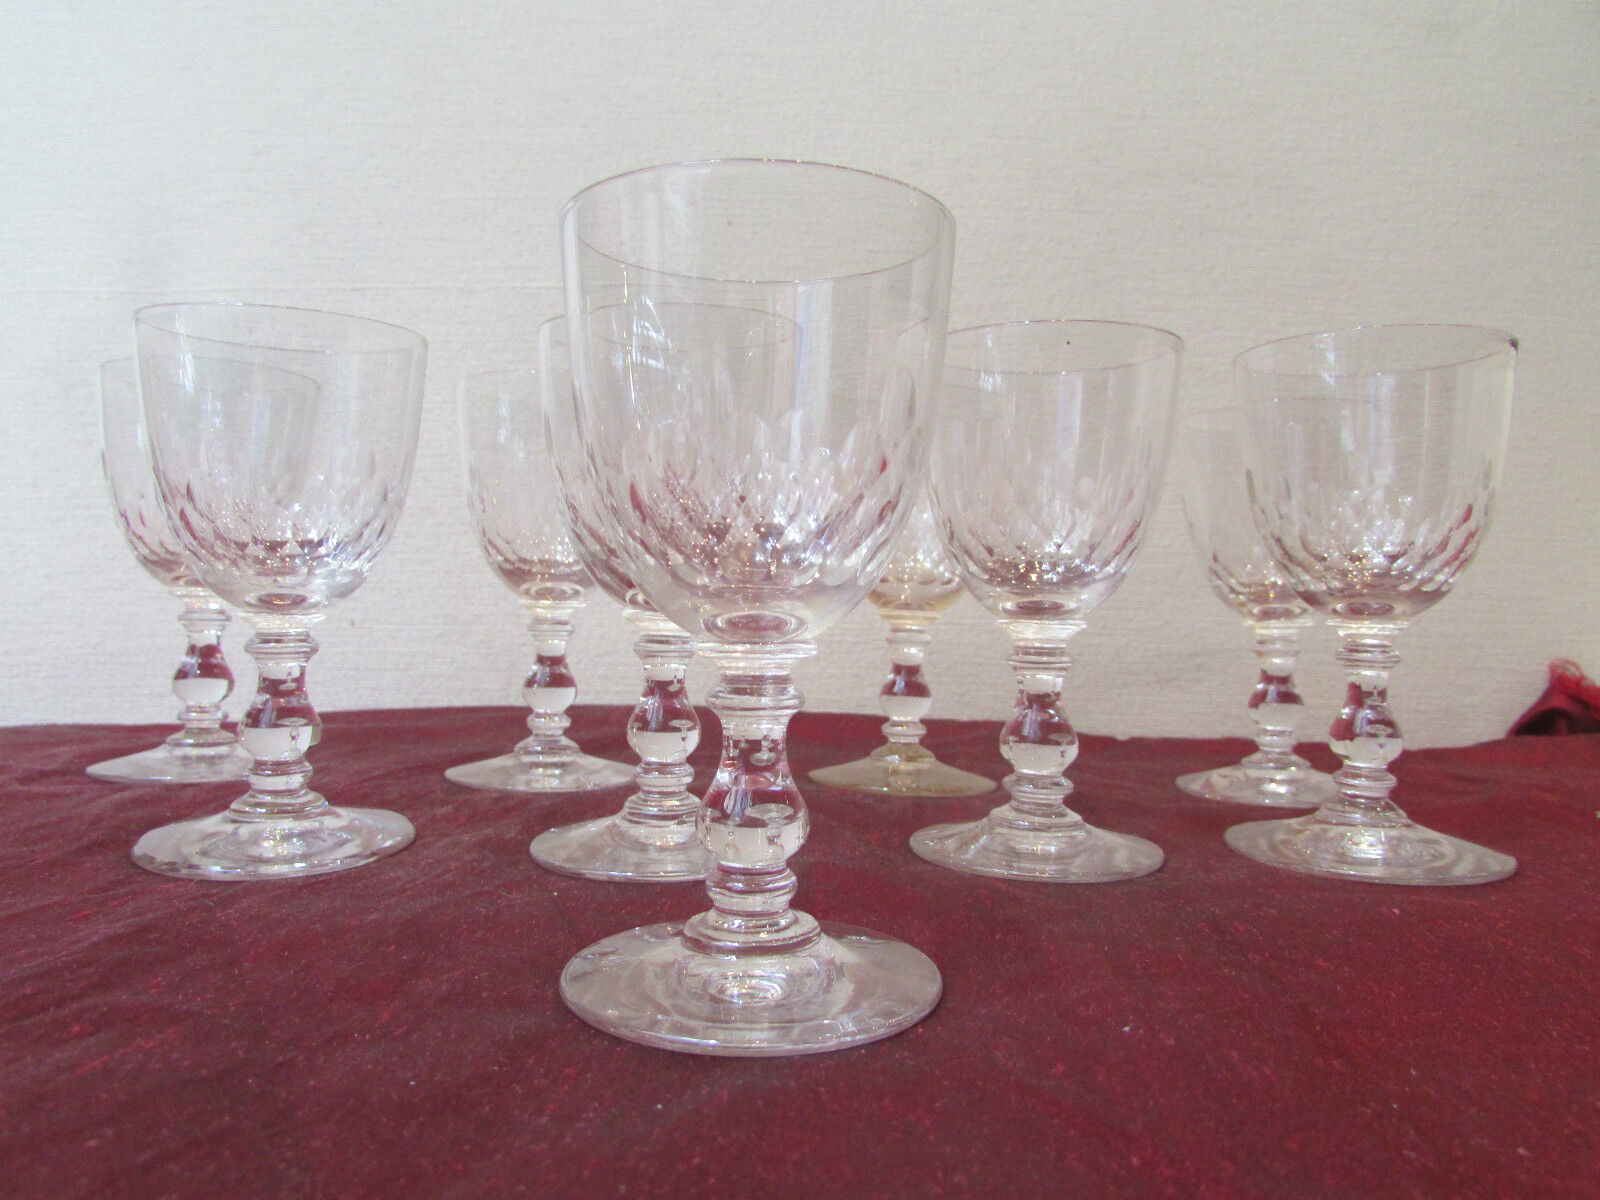 8 anciens verres a vin cristal de baccarat modele ecailles epoque 19 eme eur 145 00 picclick fr. Black Bedroom Furniture Sets. Home Design Ideas